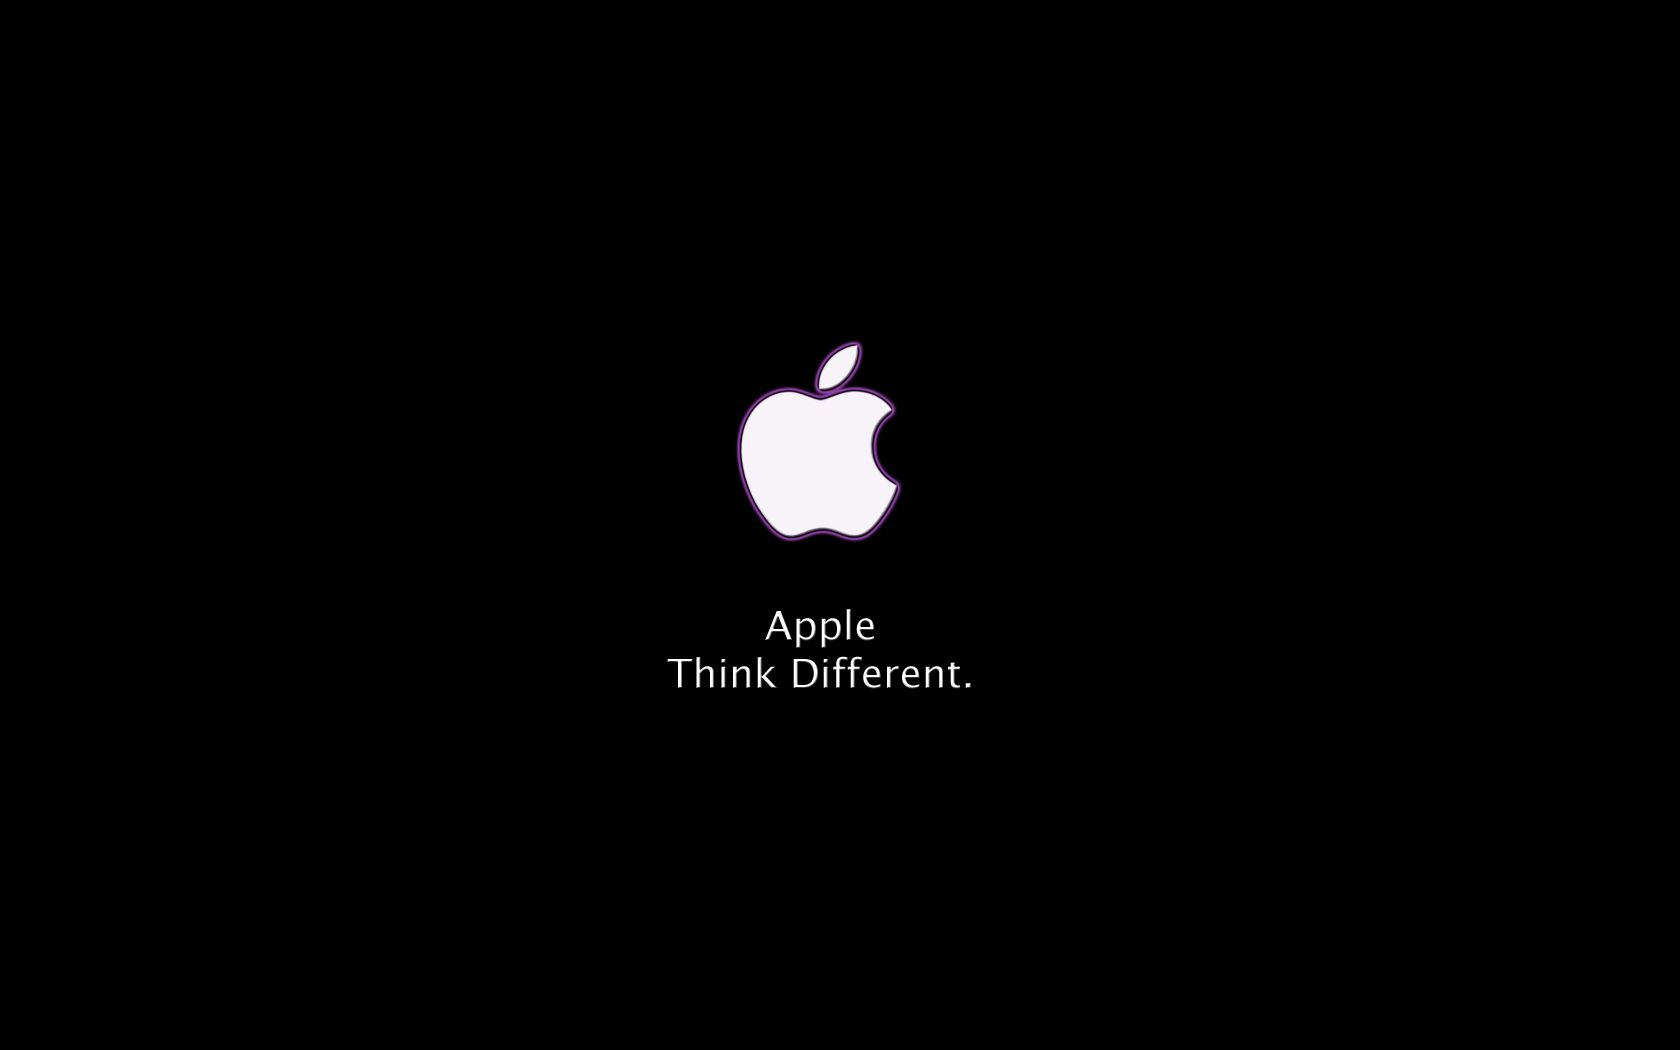 Think Different Apple Wallpaper Hd For Mac